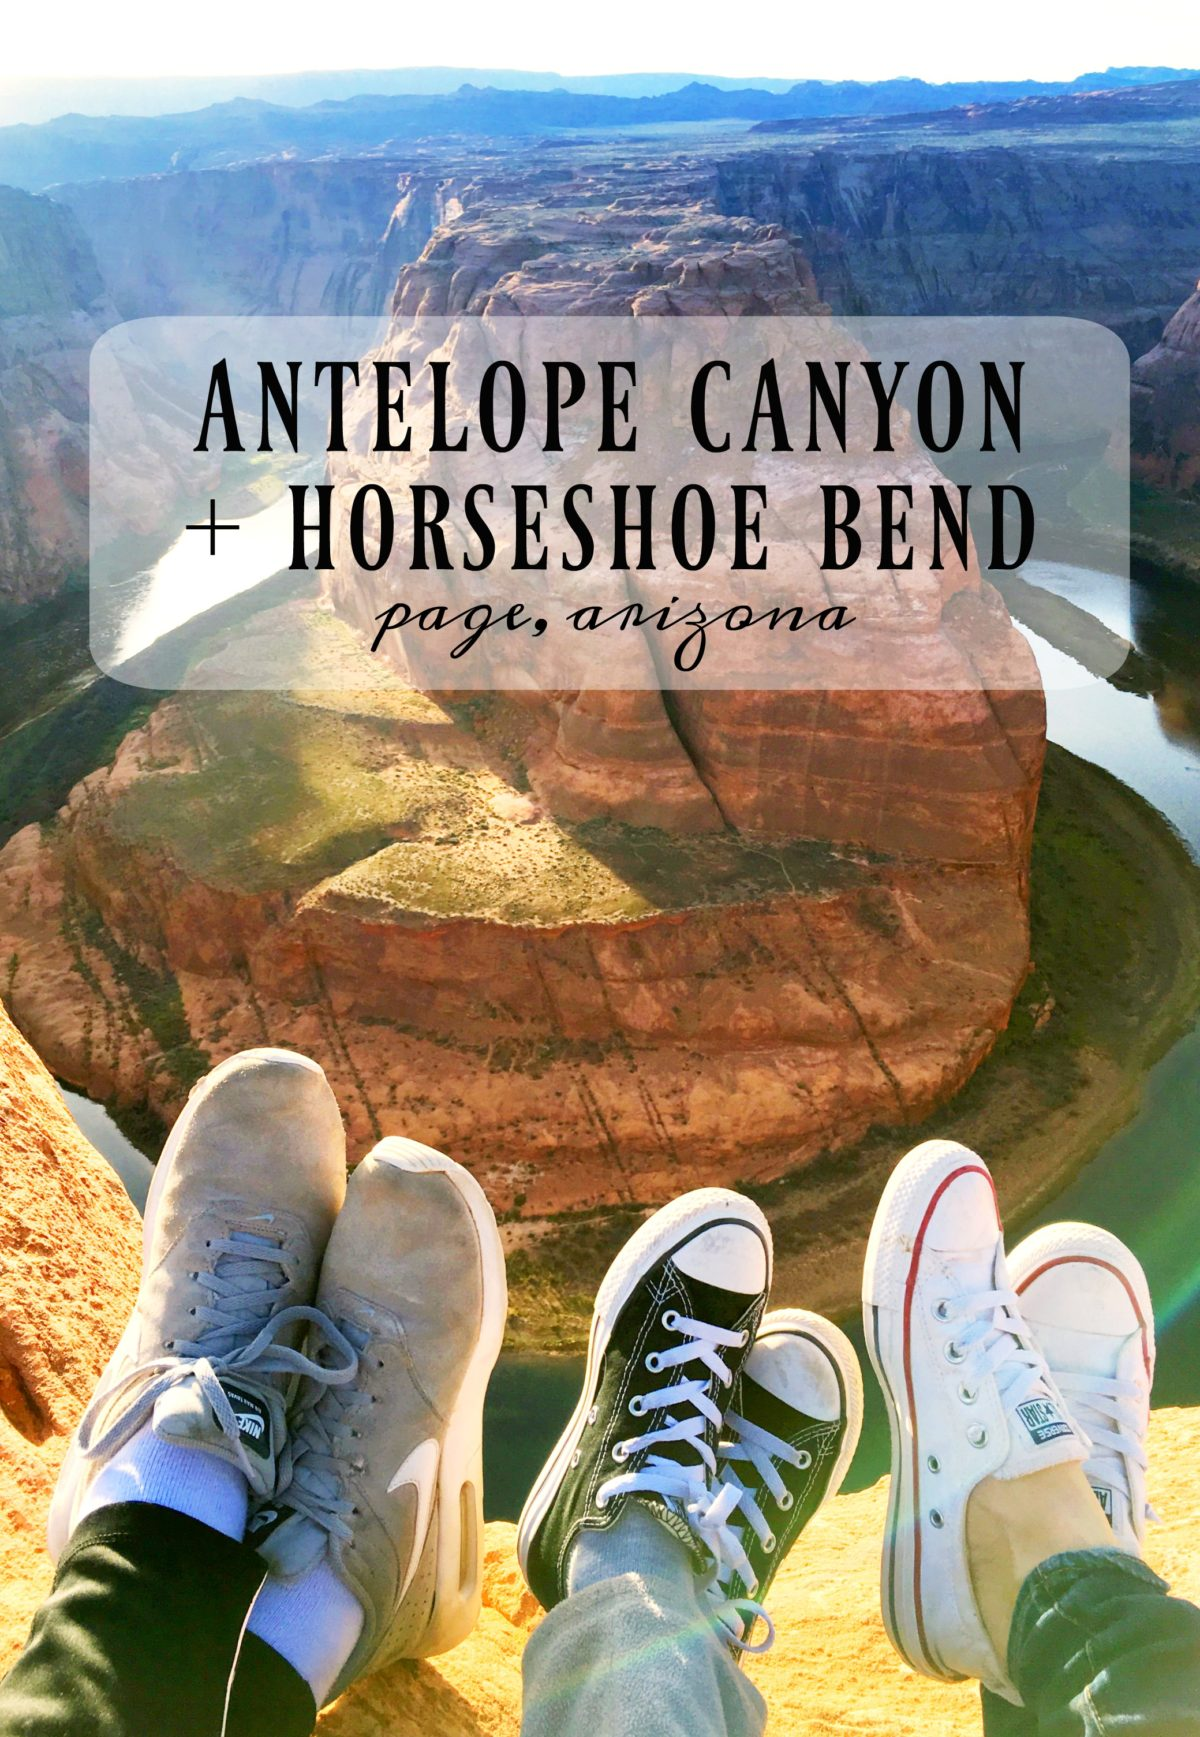 Trip Report | Antelope Canyon + Horseshoe Bend